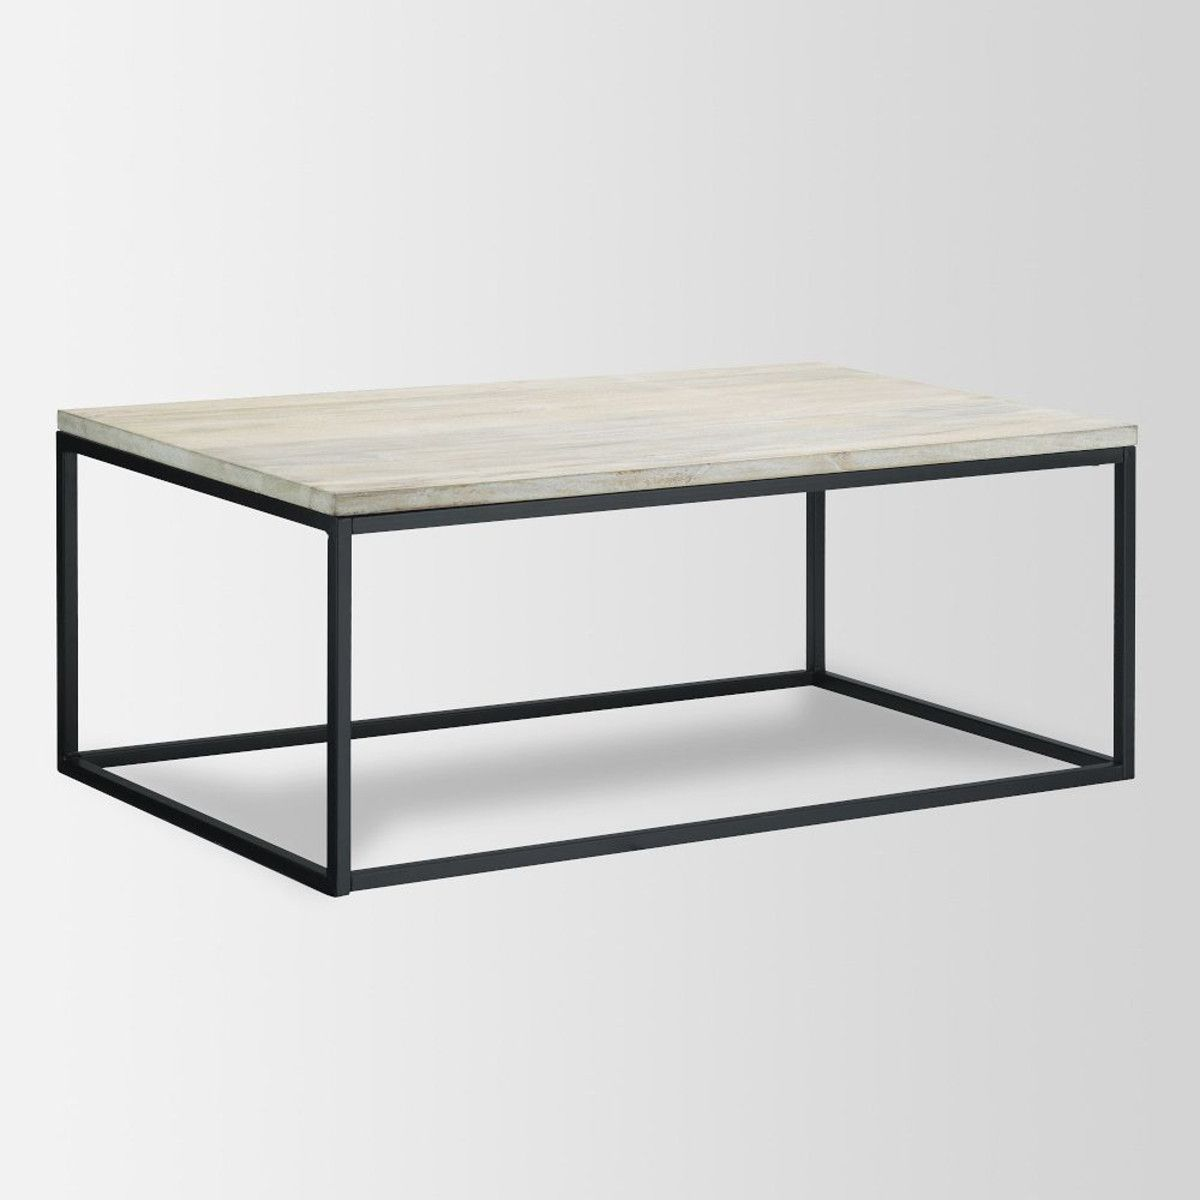 Marvelous Box Frame Coffee Table   Solid Slab Mango Wood Top With Café Finish On An  Antique Bronze Finished Steel Frame (via West Elm)   For The Home    Pinterest ...